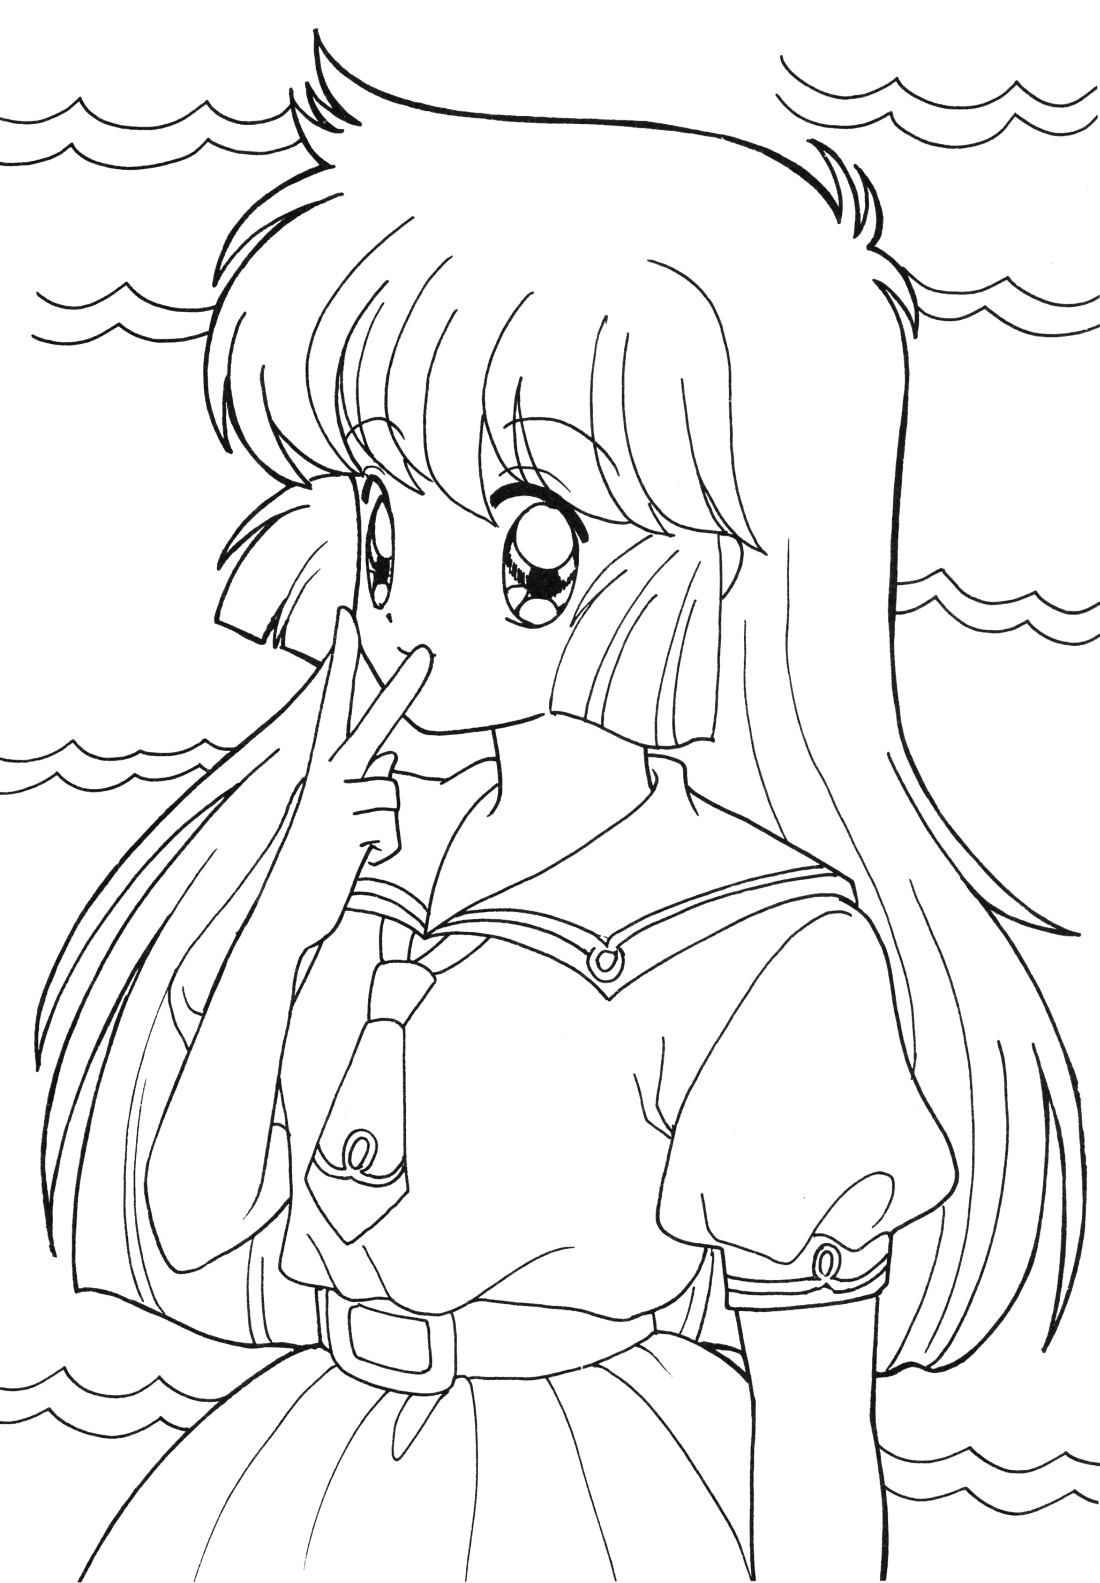 coloring anime pictures free anime girl coloring page free printable coloring coloring anime pictures